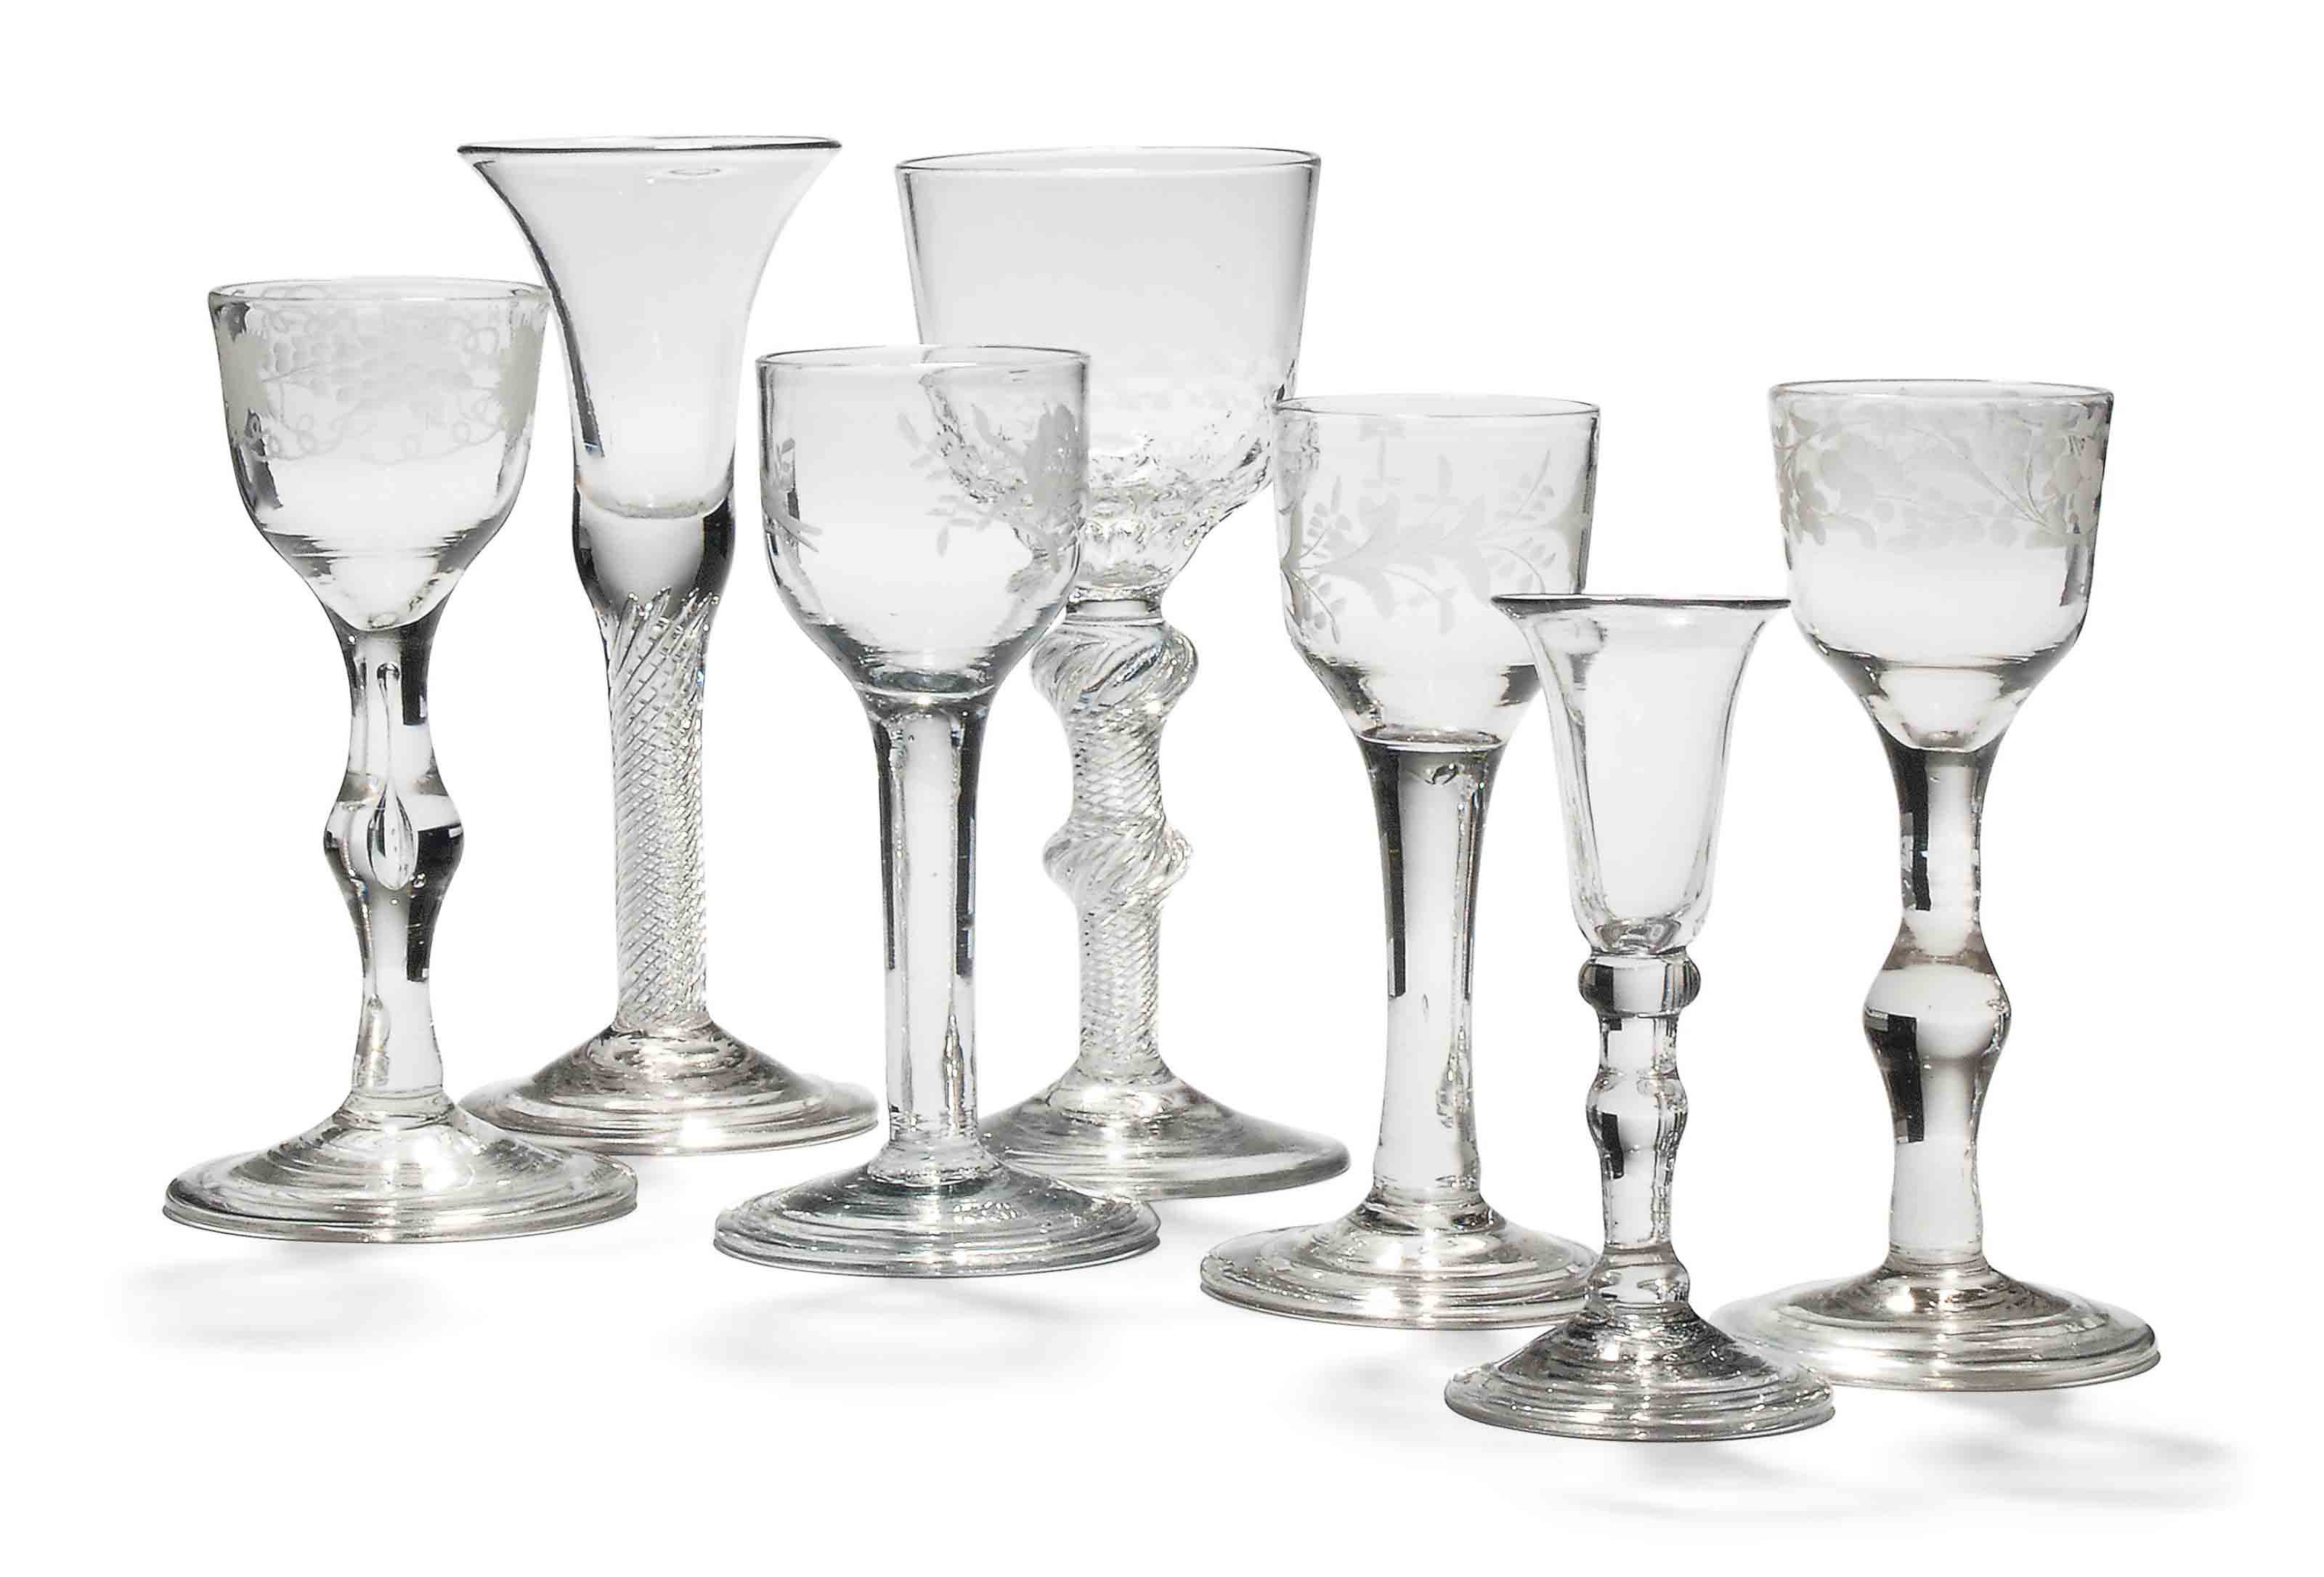 SEVEN DRINKING GLASSES